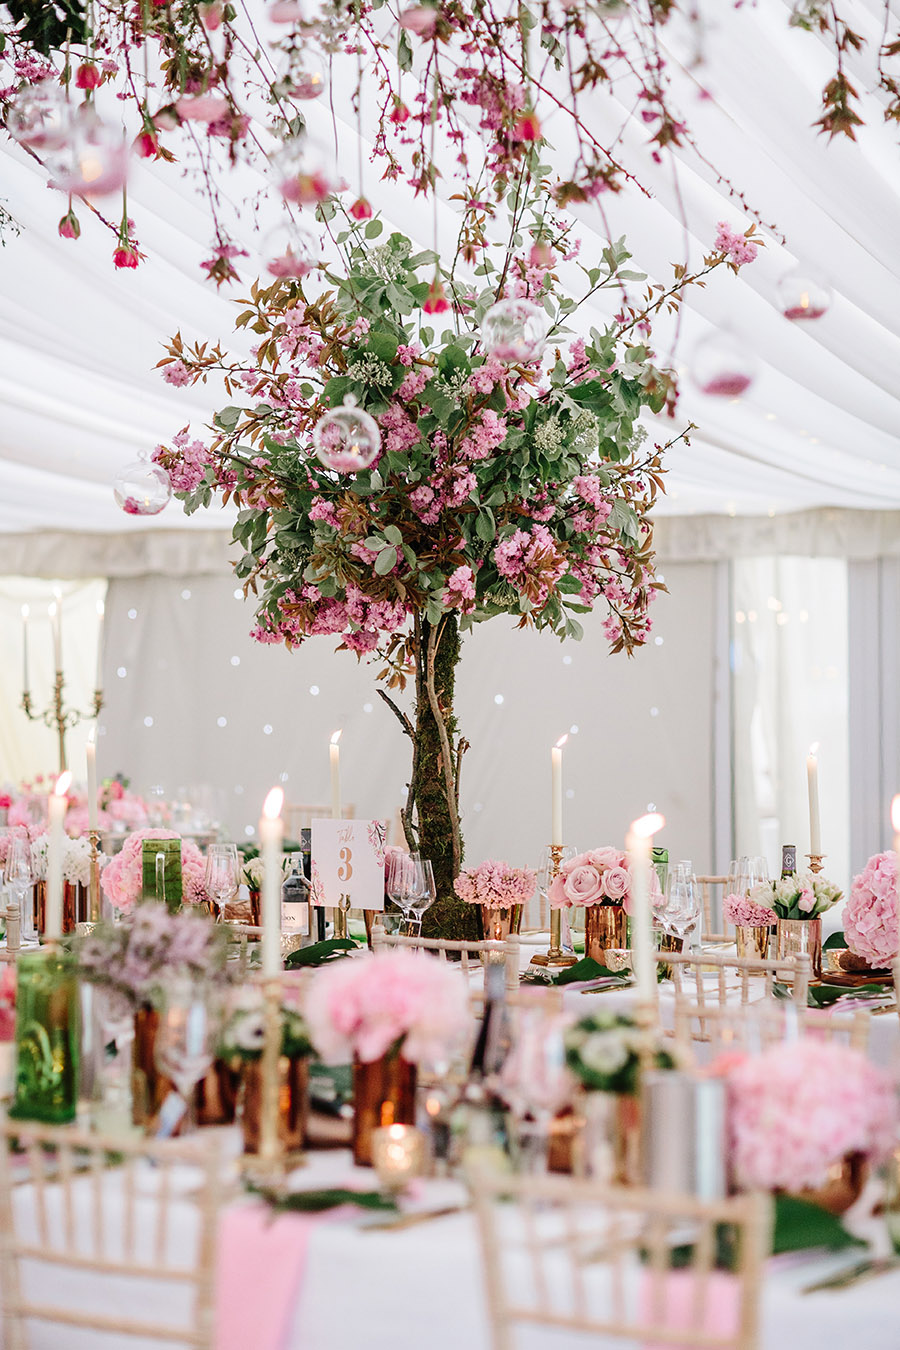 Incredible florals for Maryanne & Adam's beautiful Chippenham Park Hall wedding, with images by Nick + Maria (29)